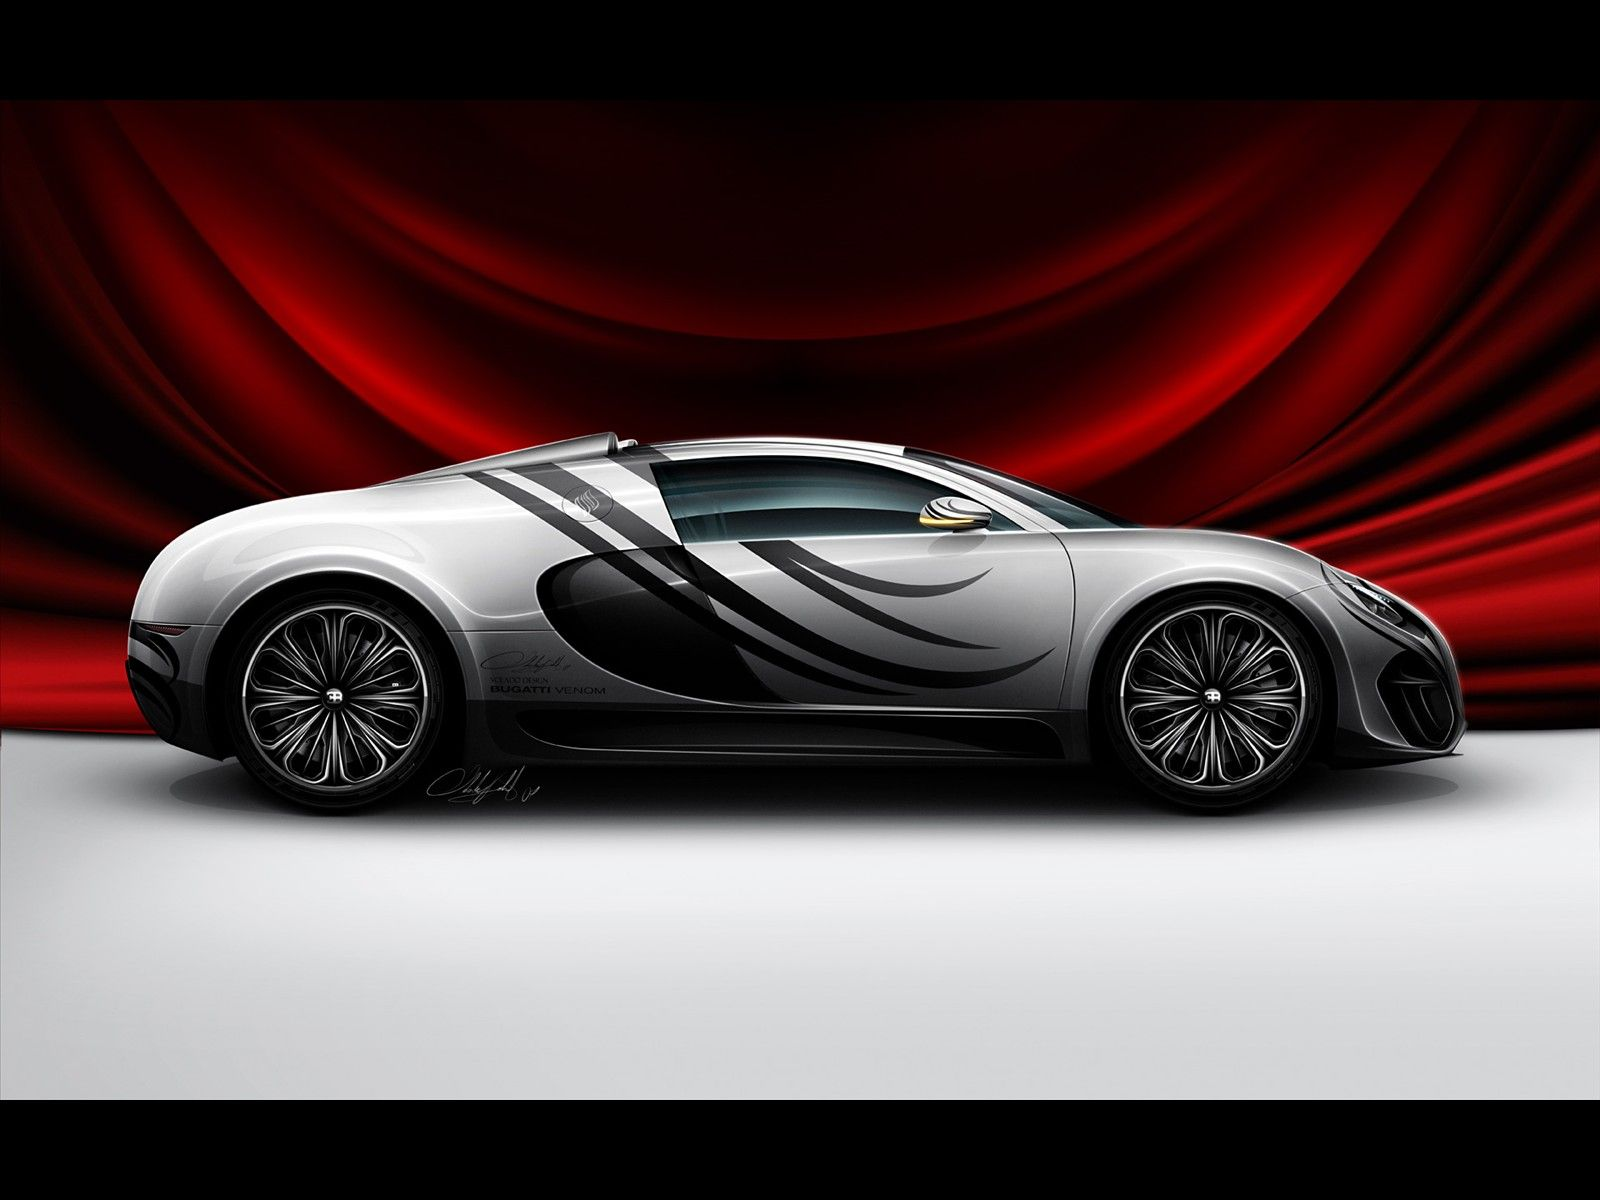 bugatti | free cars hd wallpapers: bugatti venom concept car hd wall